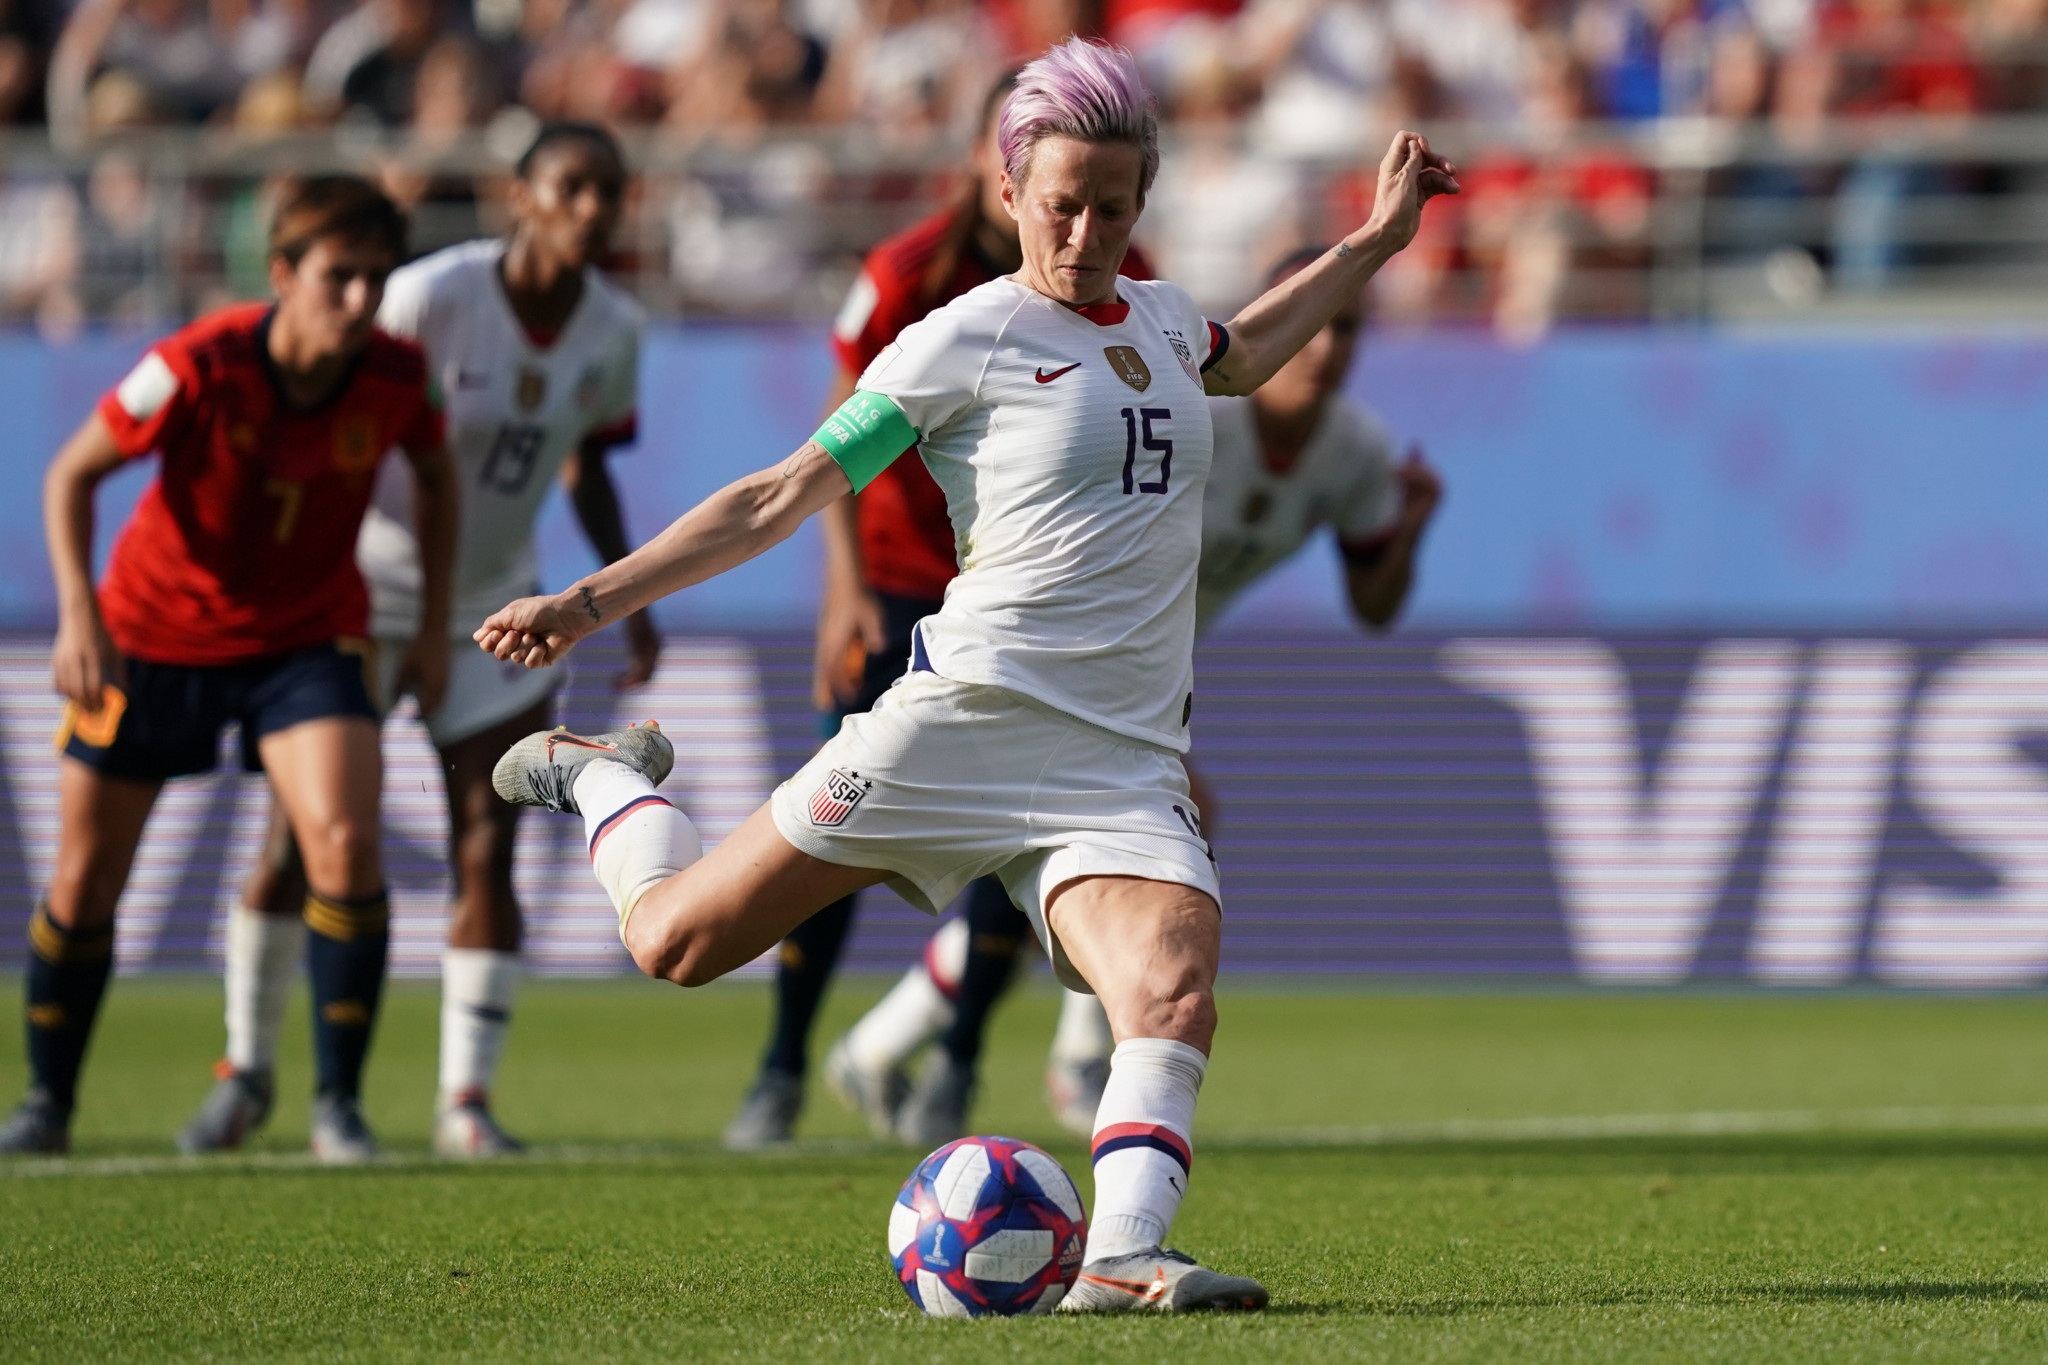 Rapinoe scores twice from penalty spot as holders United States beat Spain in last-16 of FIFA Women's World Cup